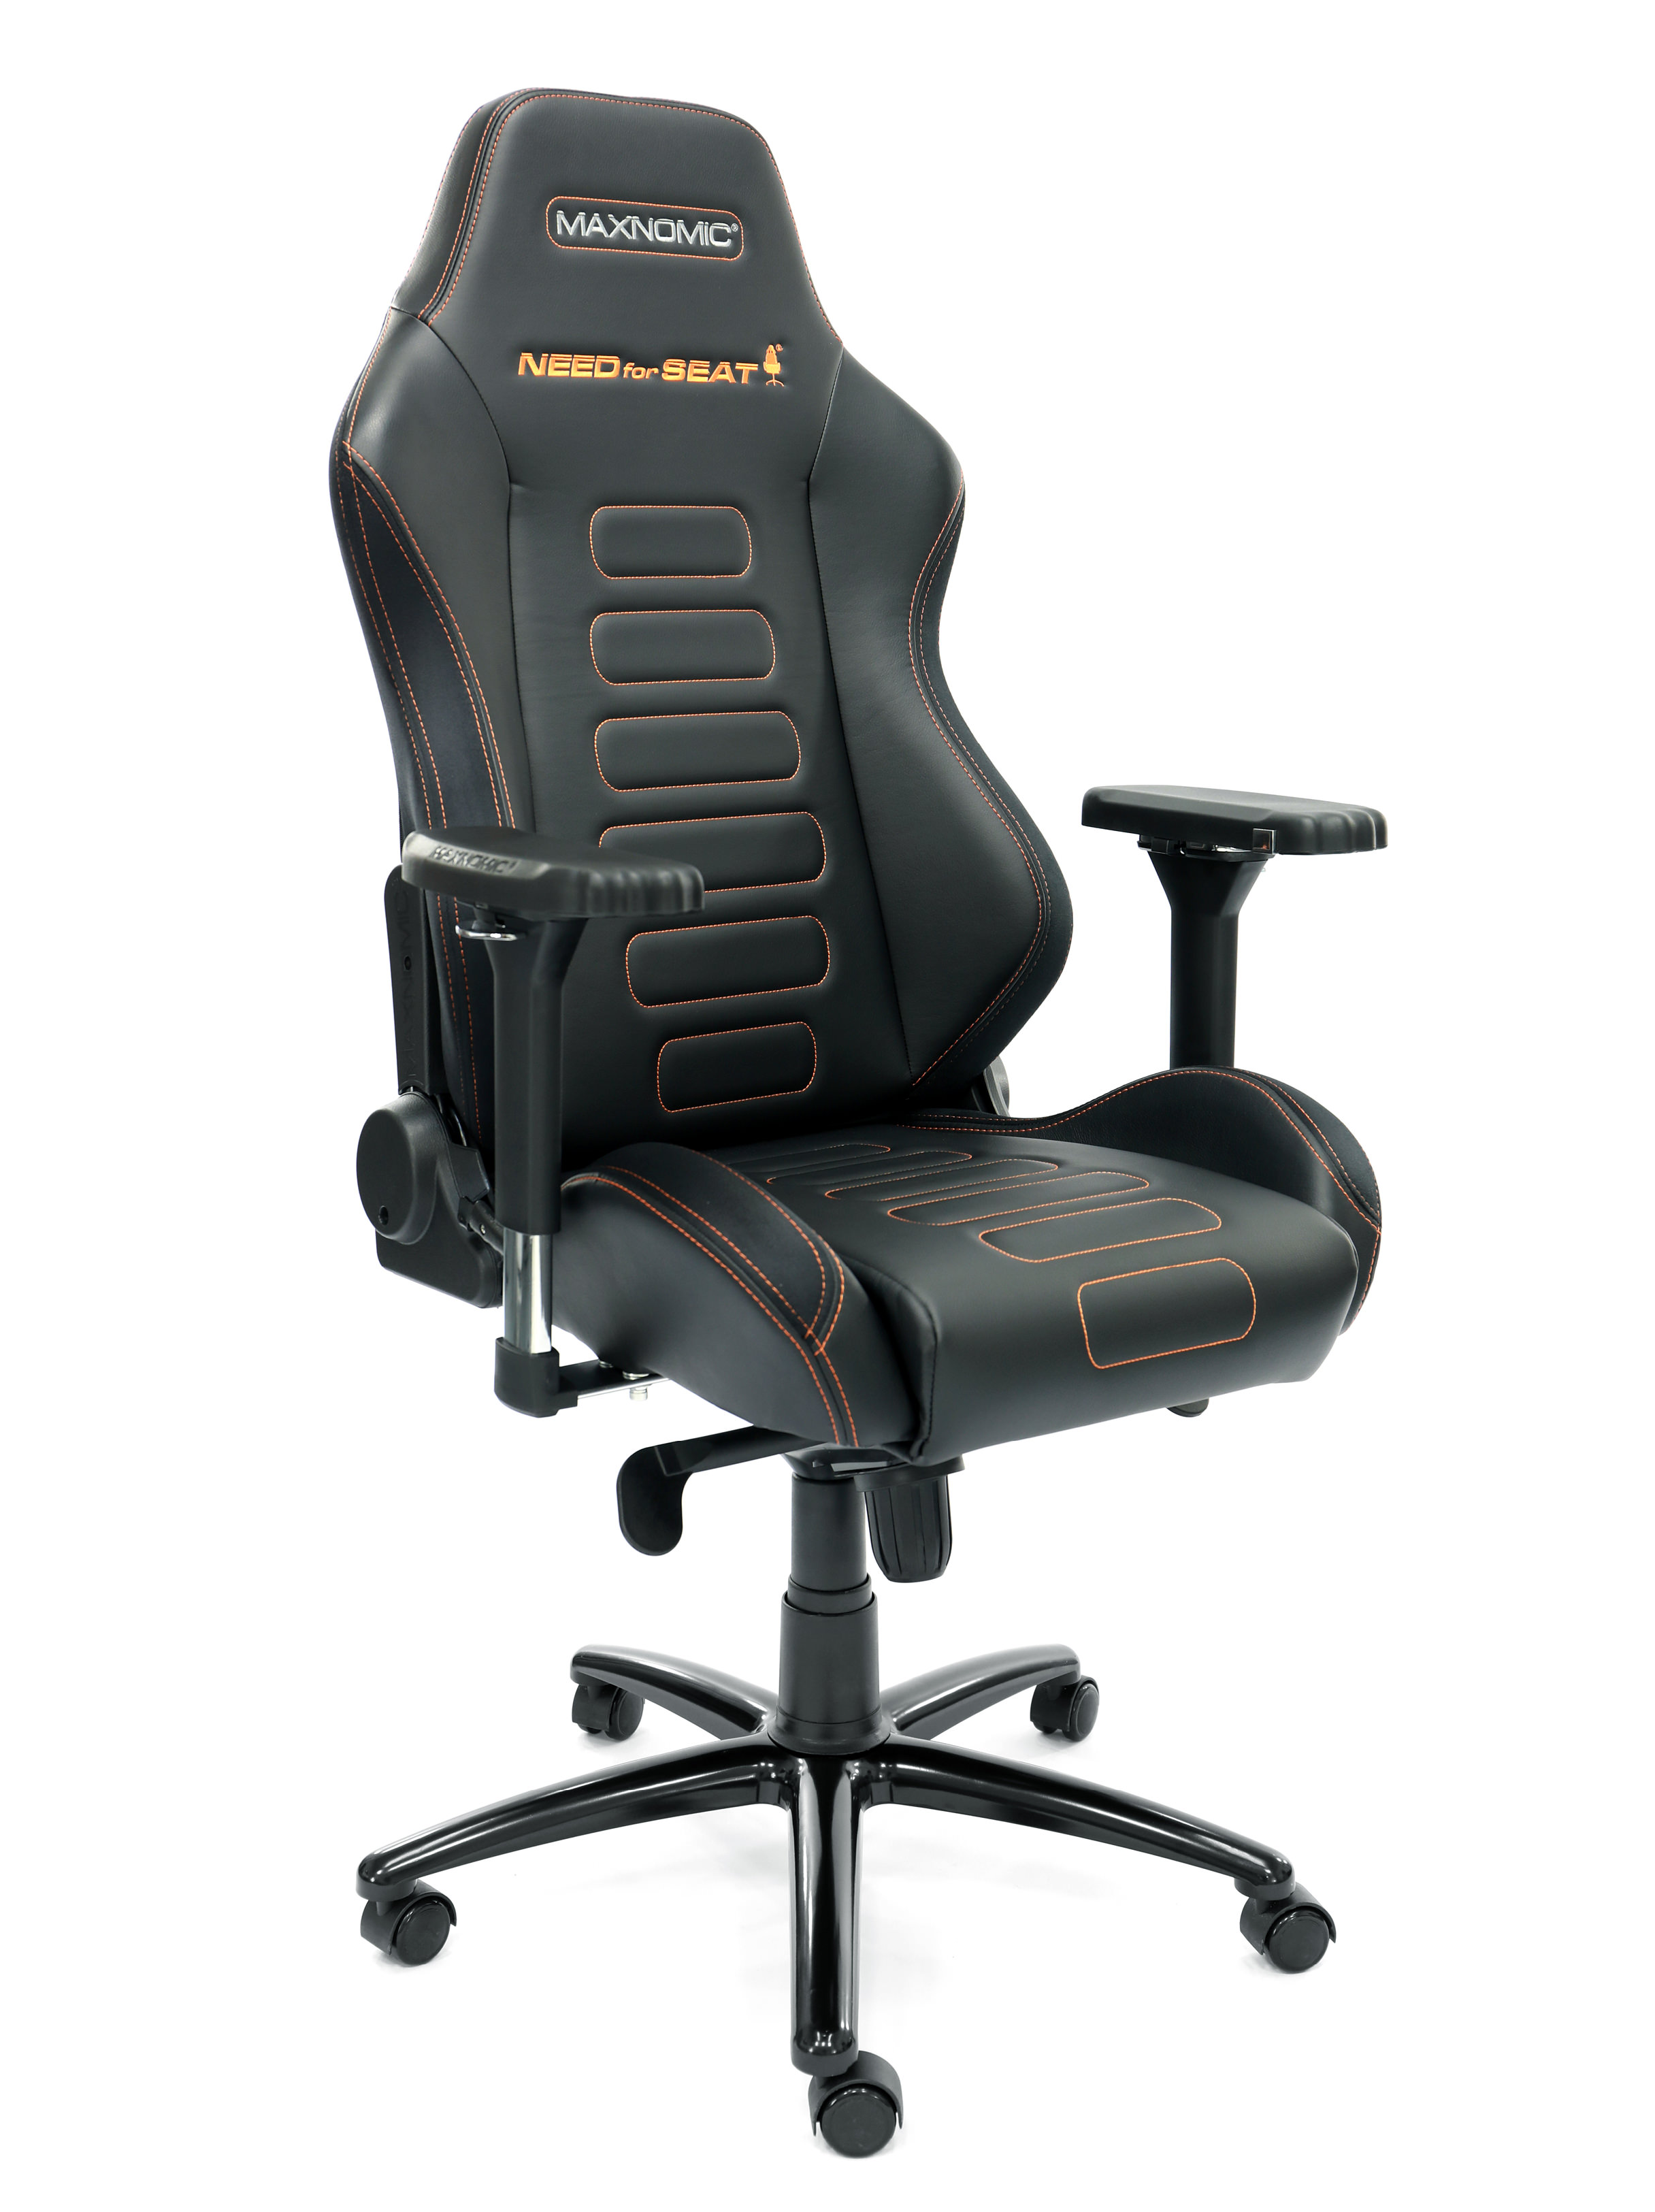 Maxnomic Gutschein Needforseat Pro